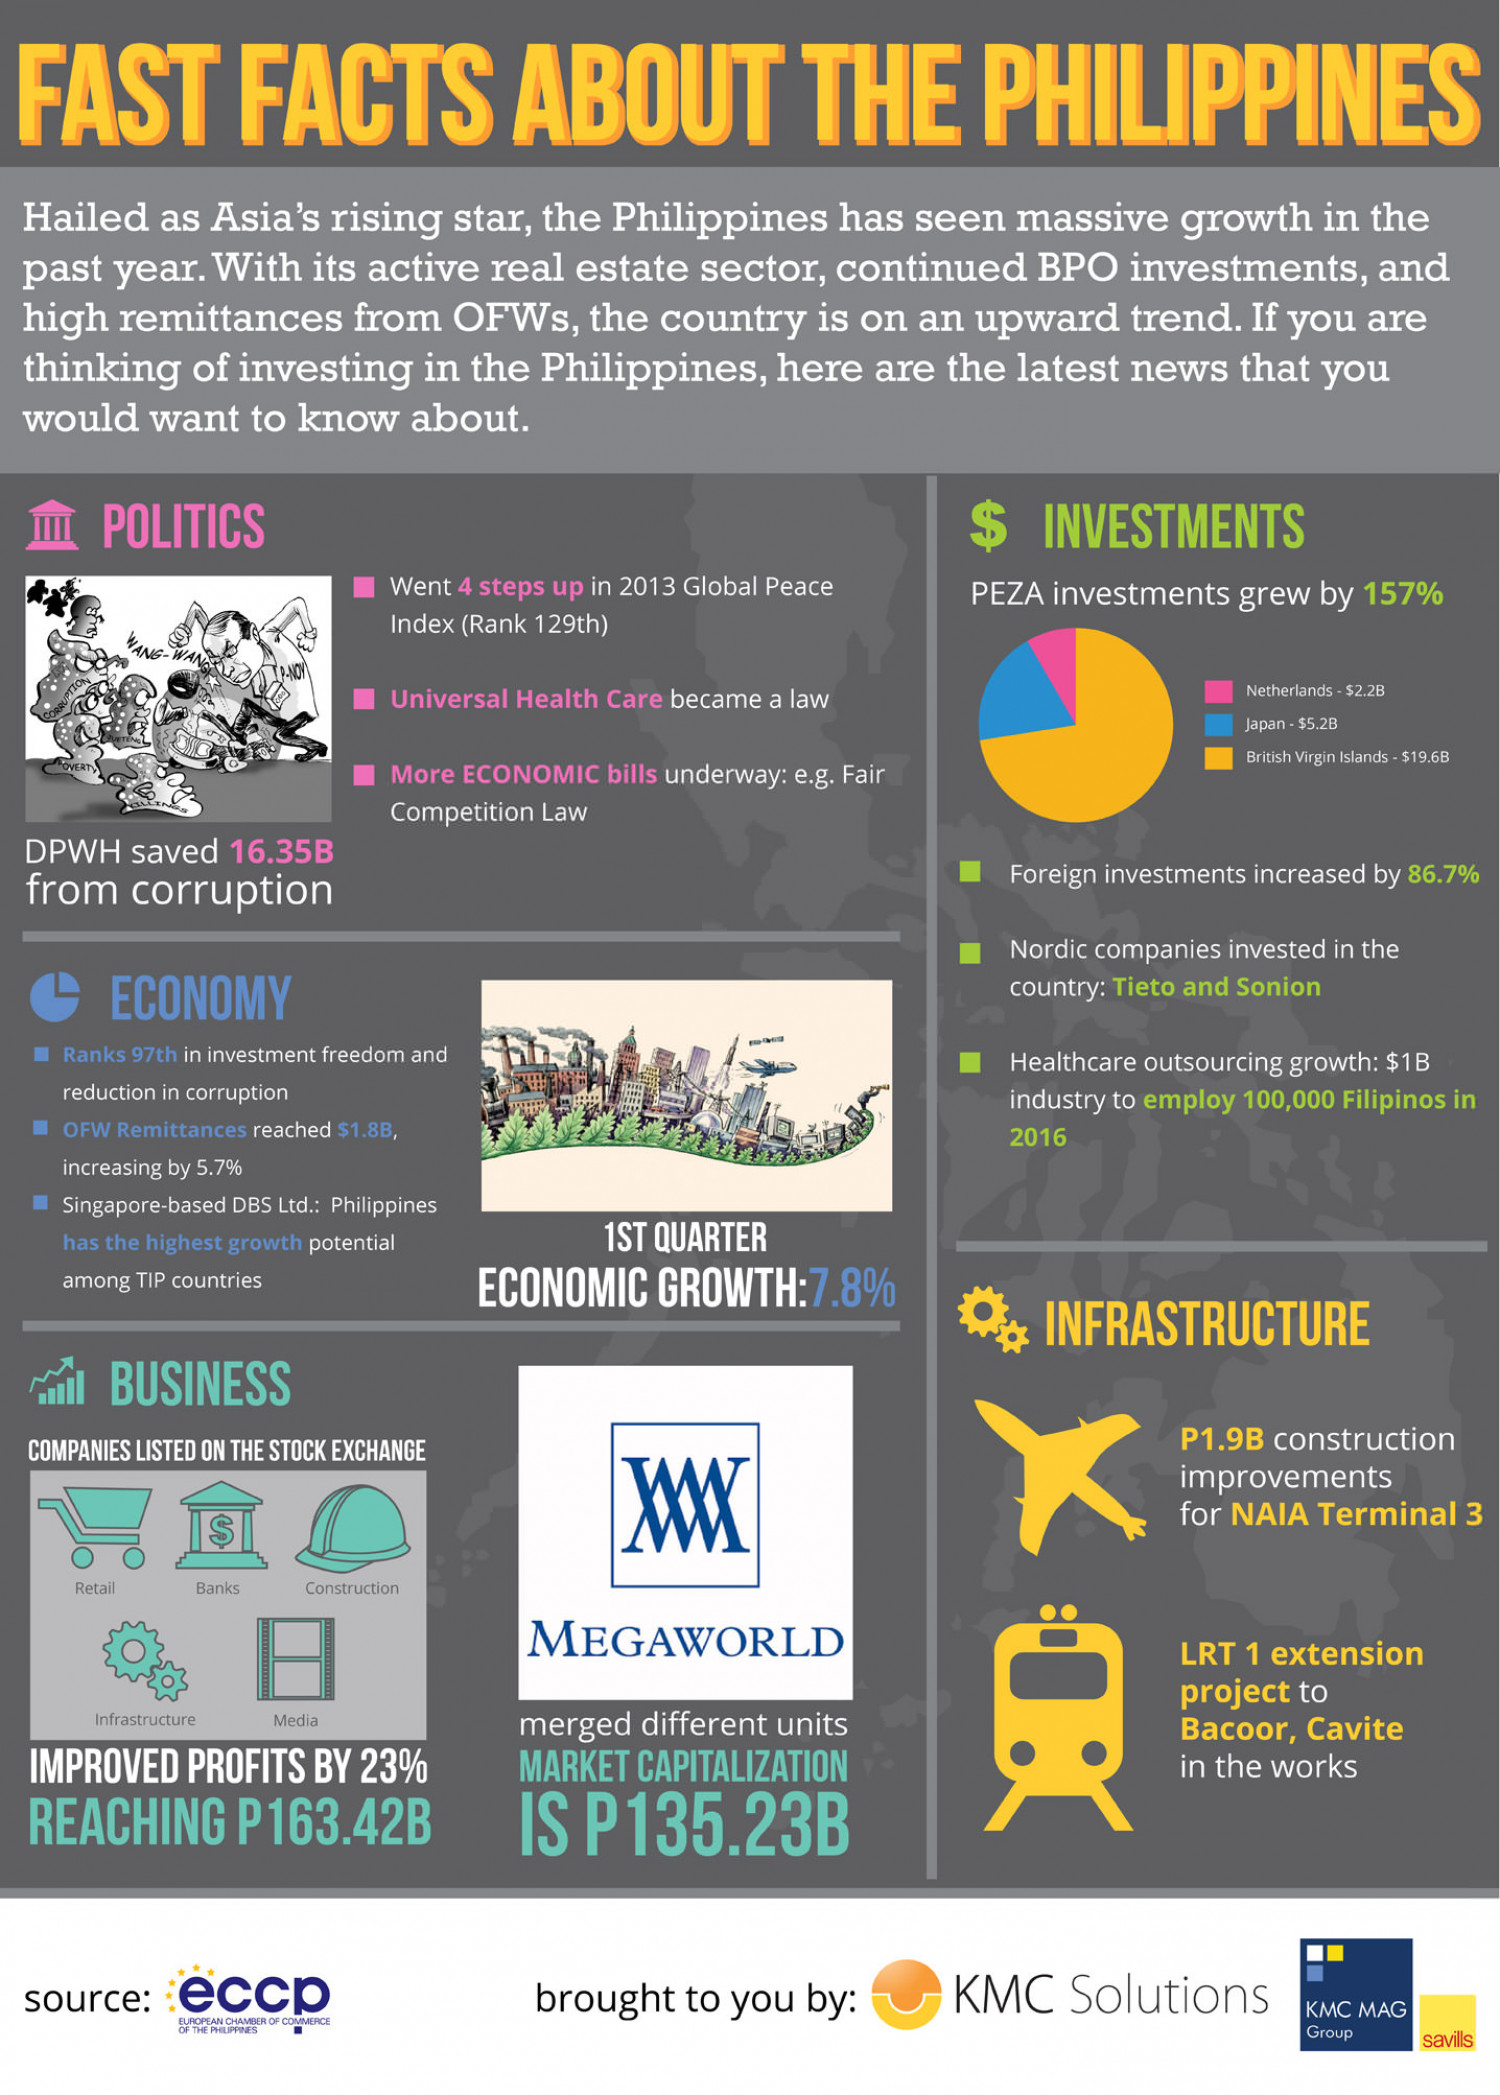 Fast Facts About the Philippines: An Investor's Guide Infographic